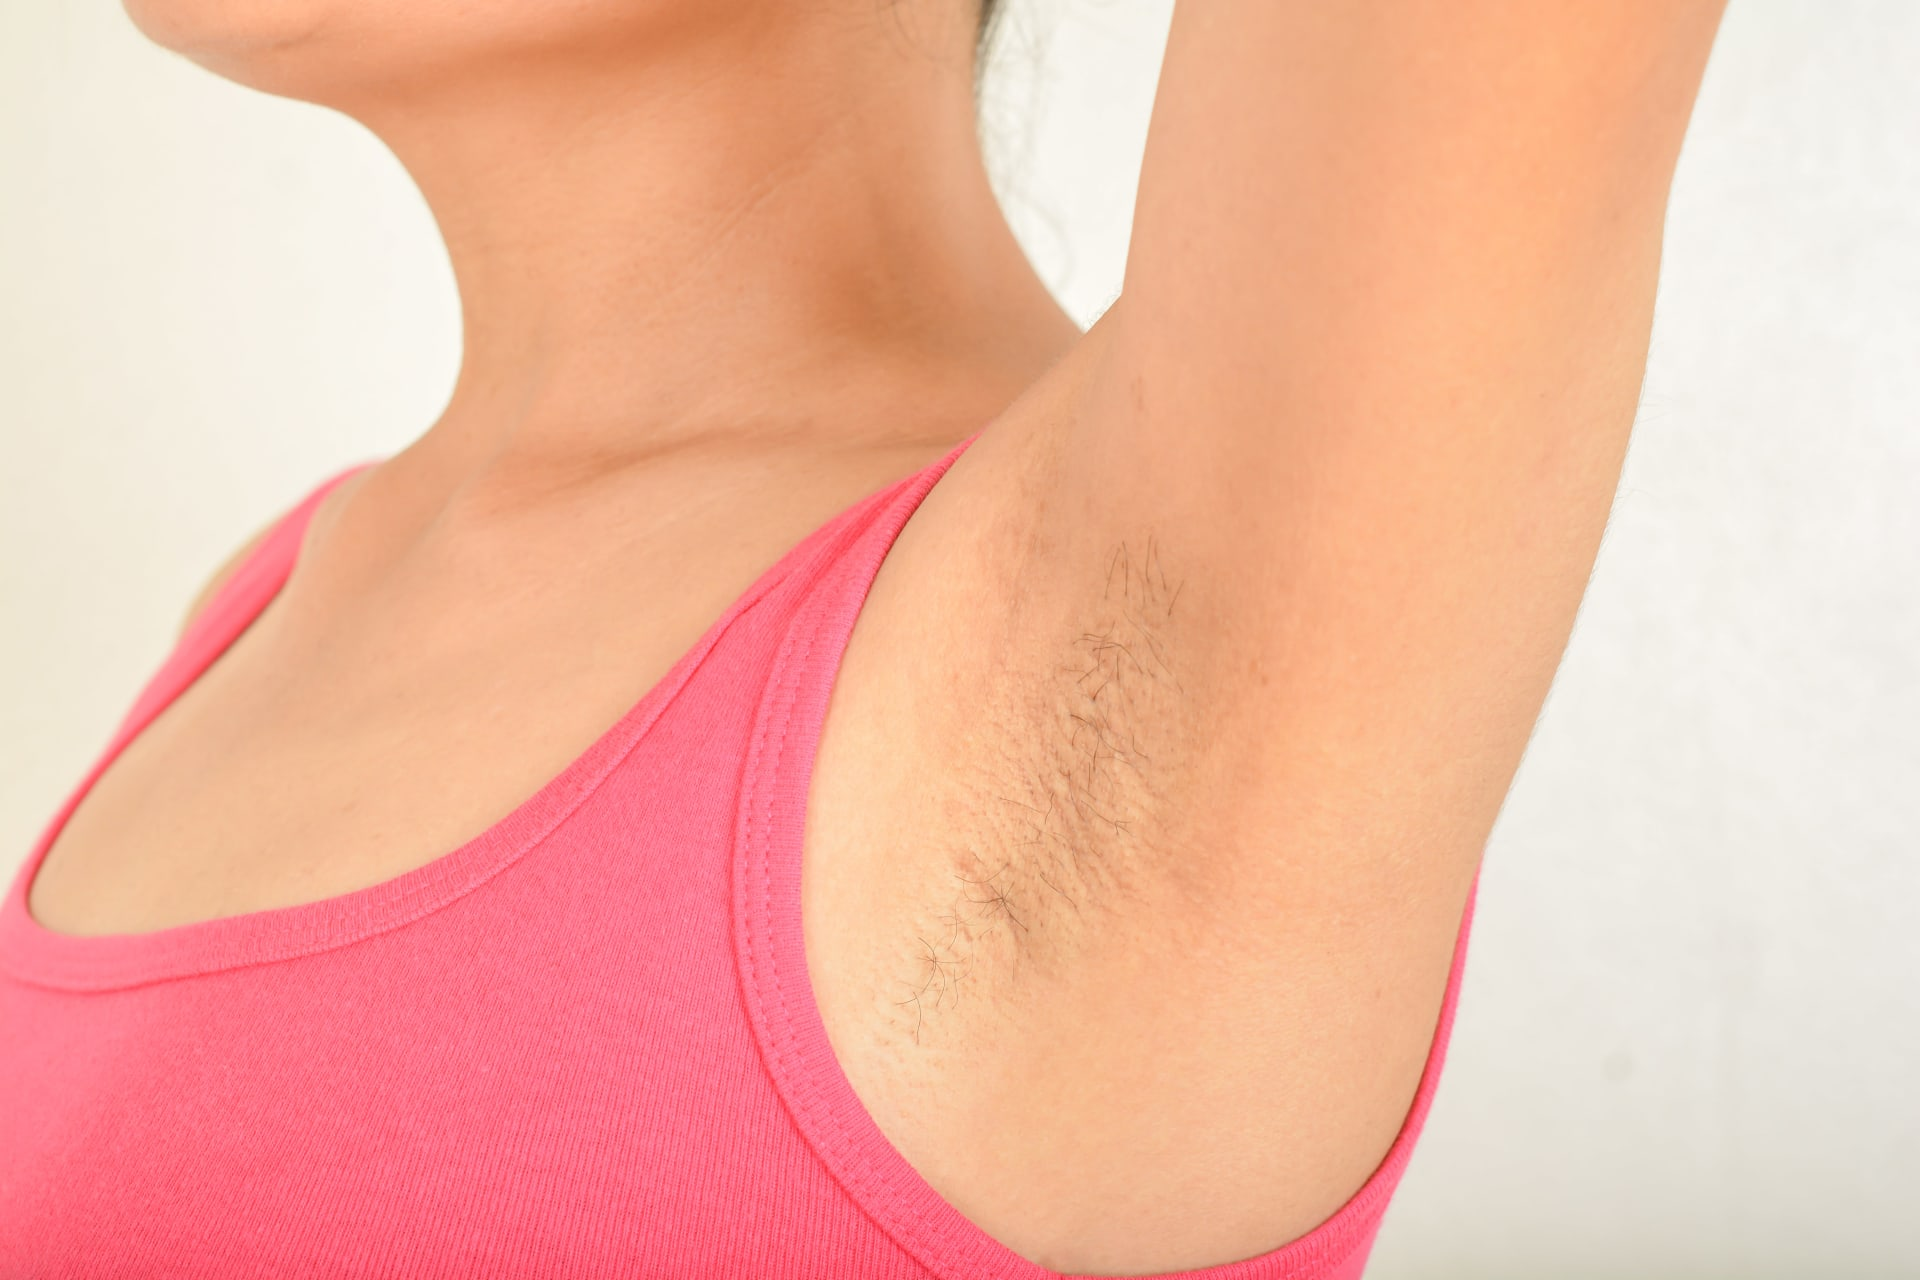 Women's armpit with hair on it